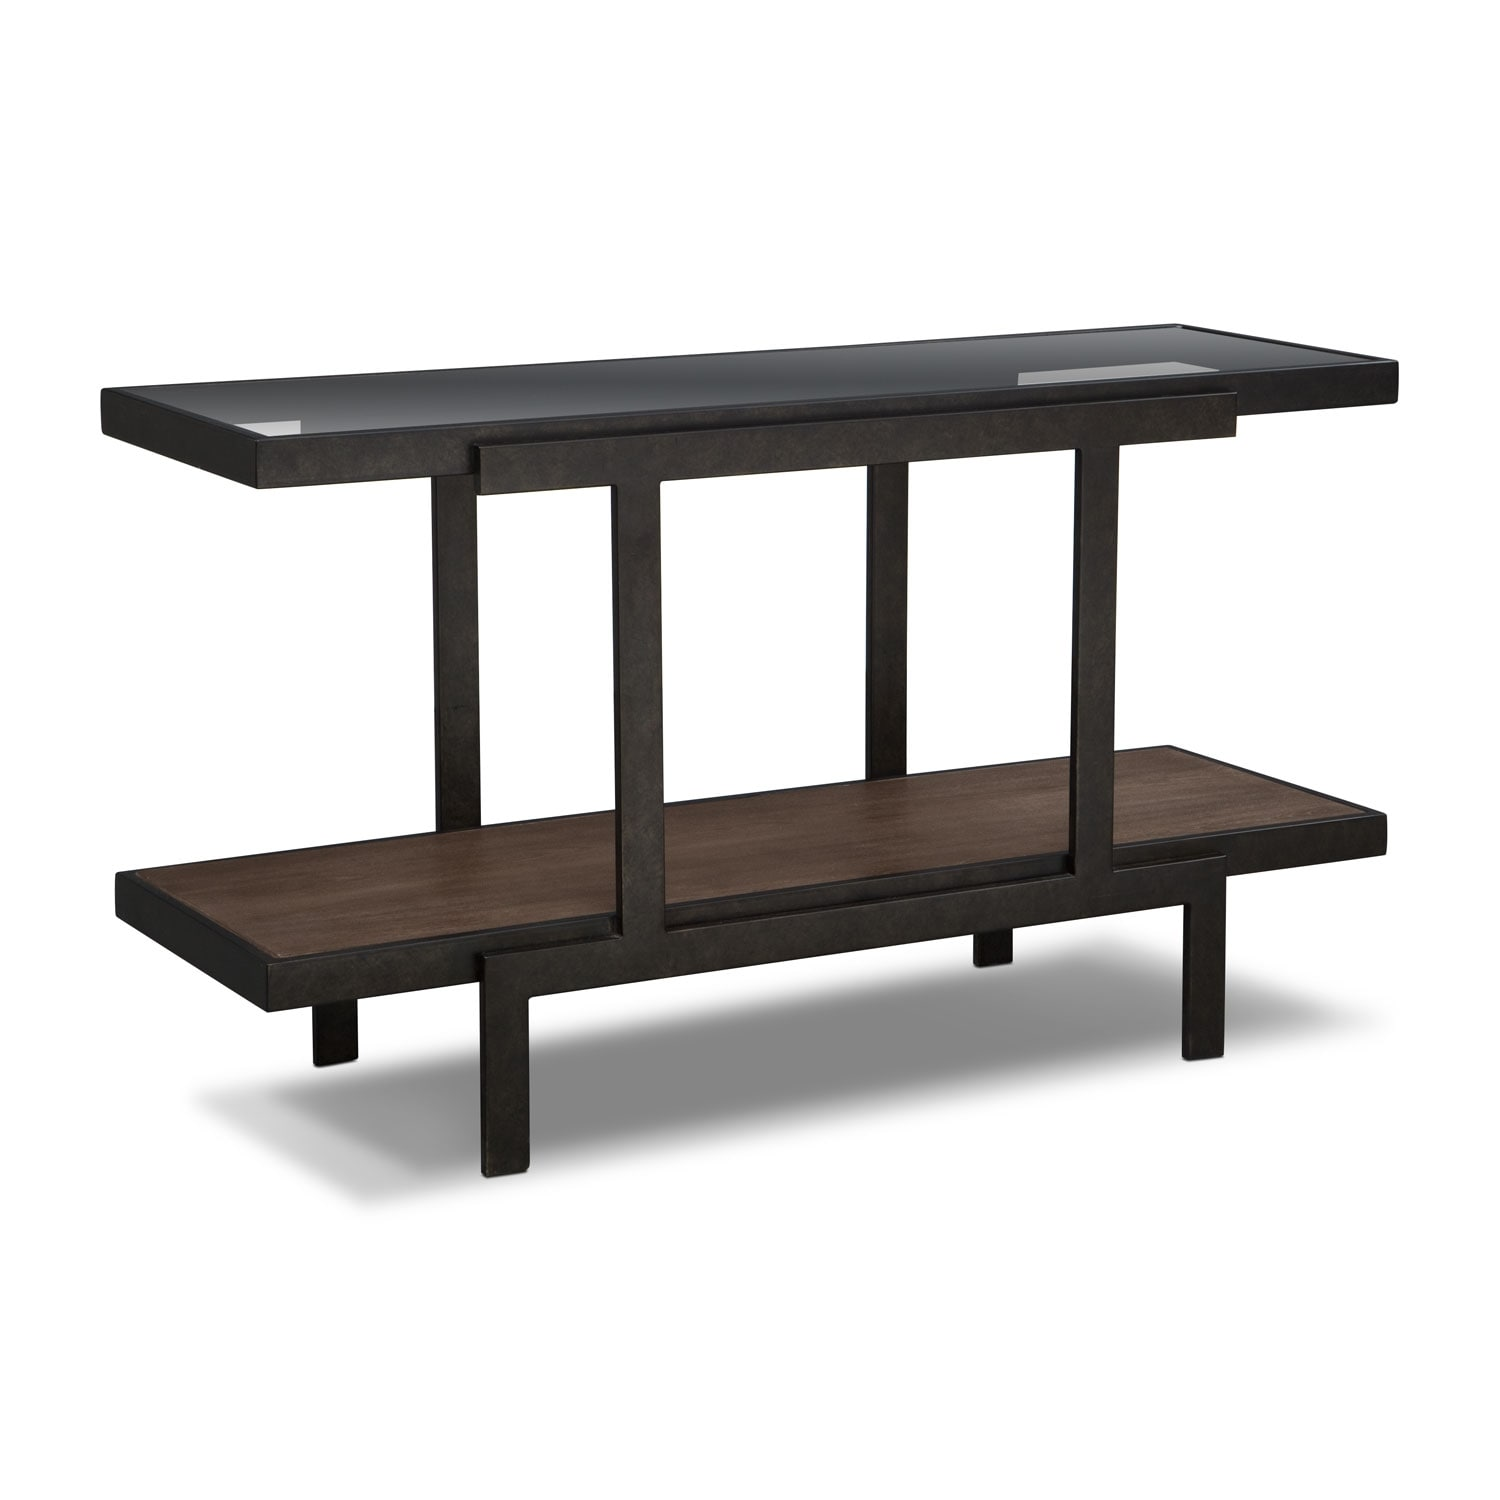 Accent and Occasional Furniture - Beasley Sofa Table - Espresso